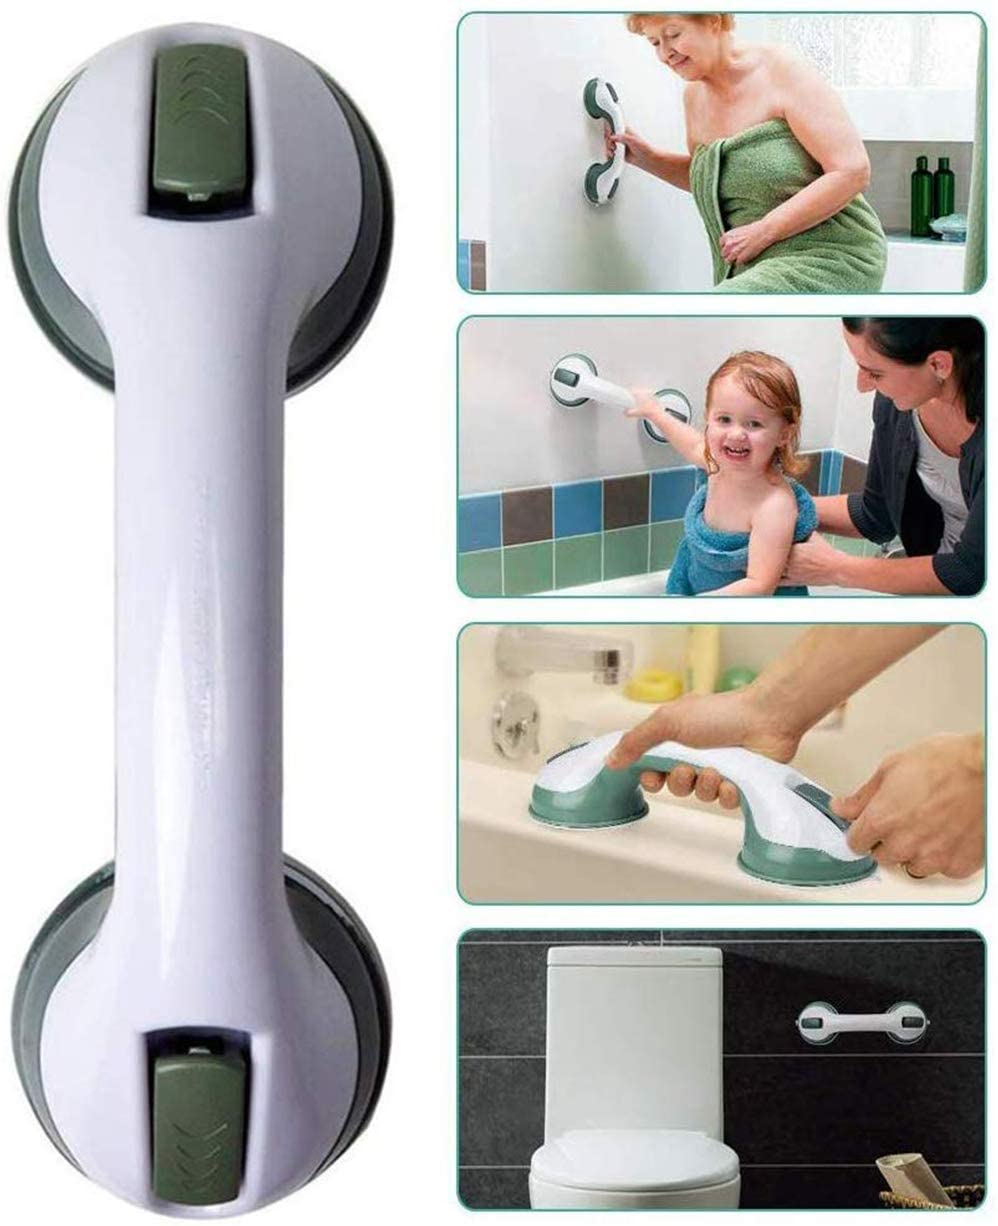 ZSBY Bathroom Support Handle with Suction, Anti-Slip Super Grip Bath Handle, for Elderly, Children, Disabled, Pregnant Women